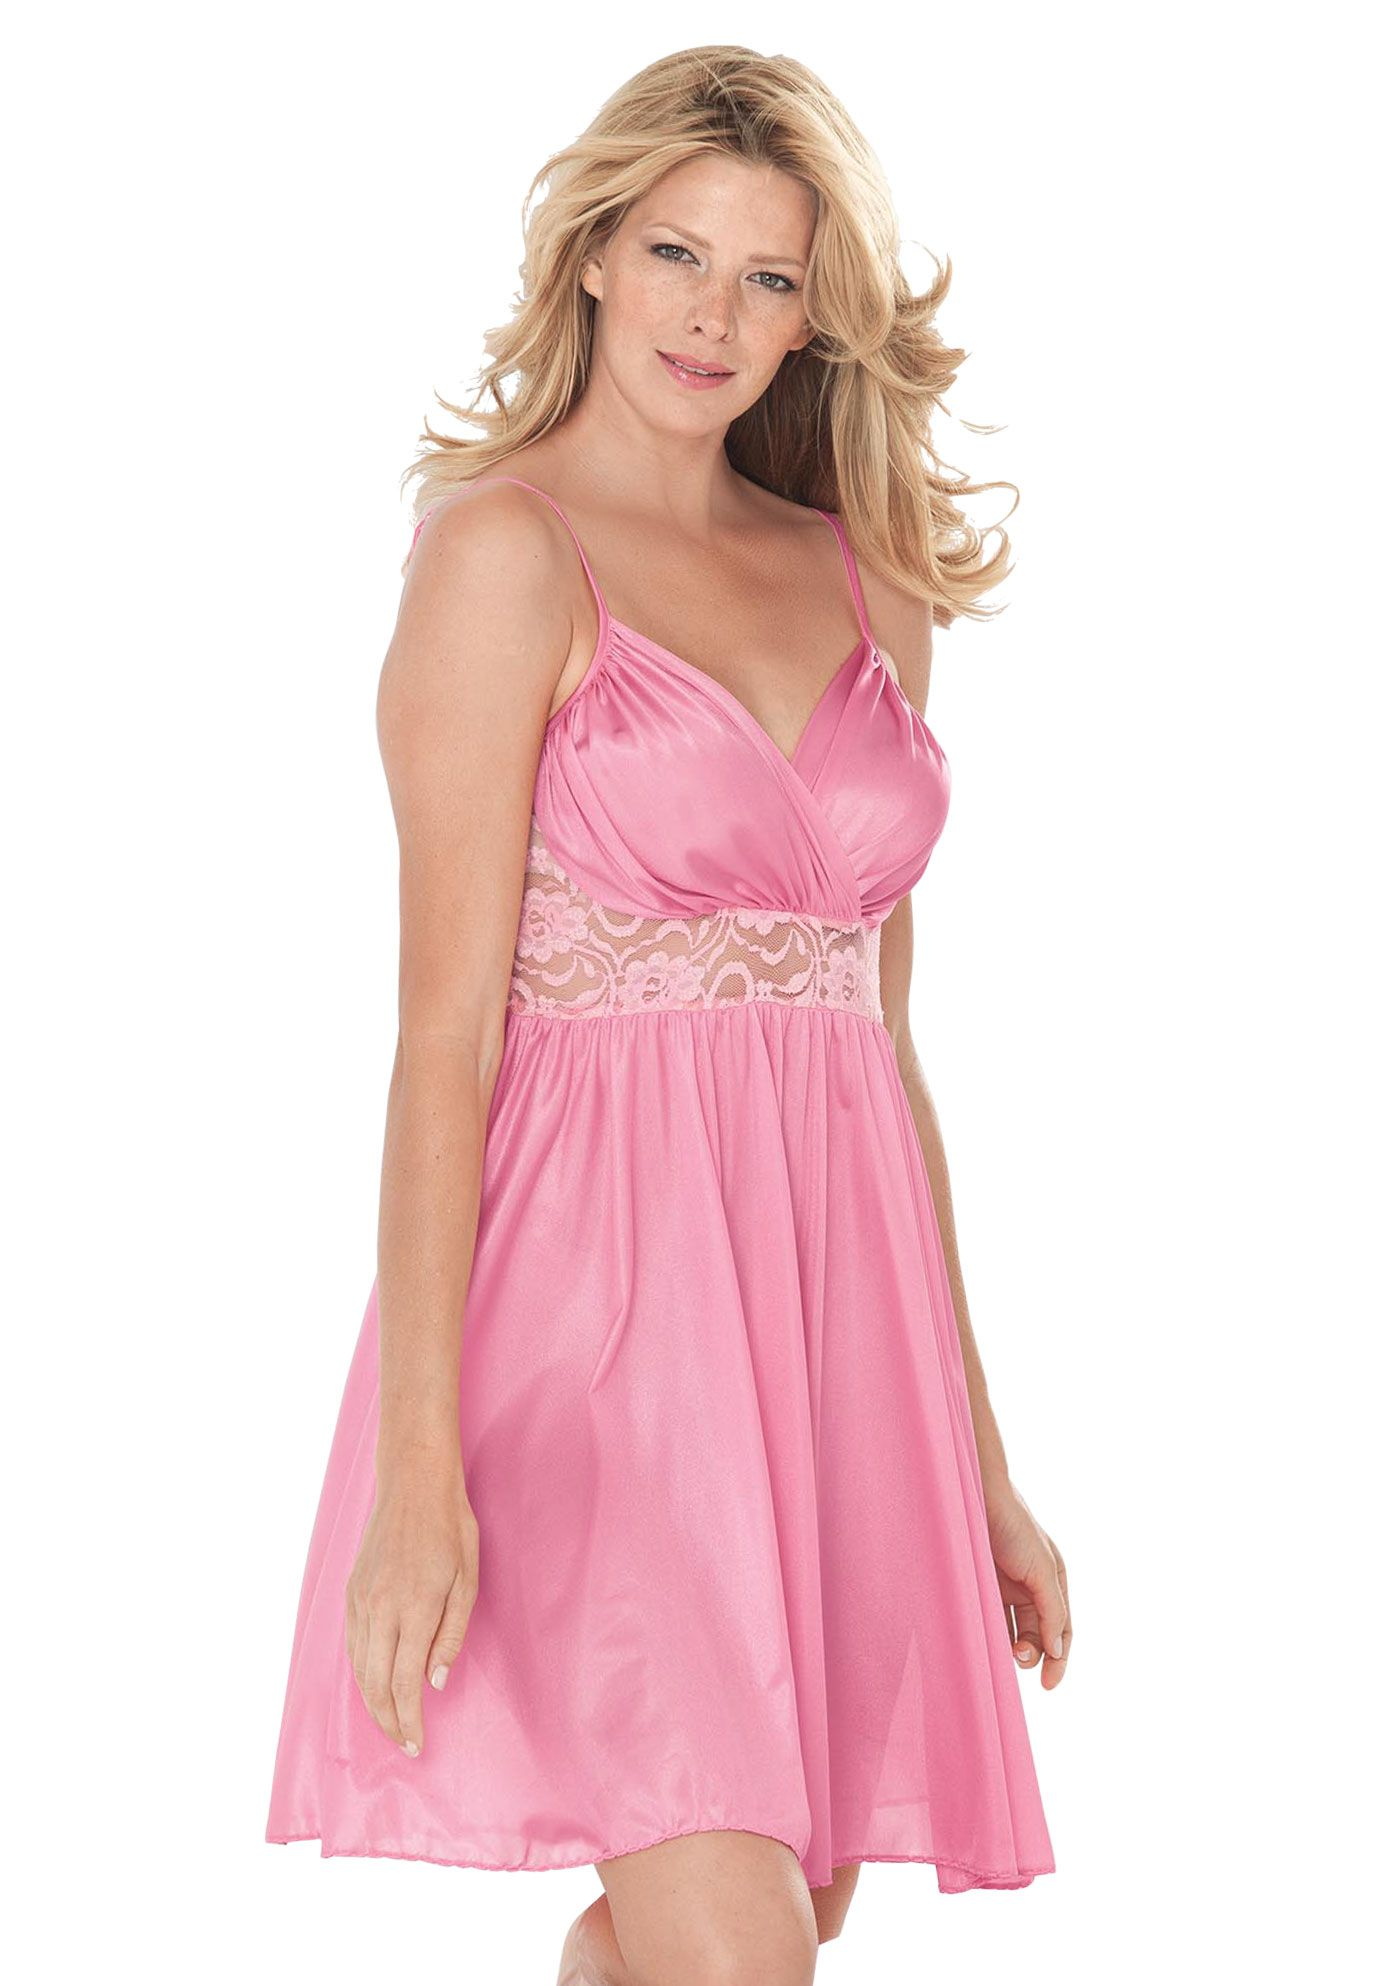 bfbe6da61 Get swept away in the Plus Size tricot and lace babydoll nightgown by  Amoureuse!